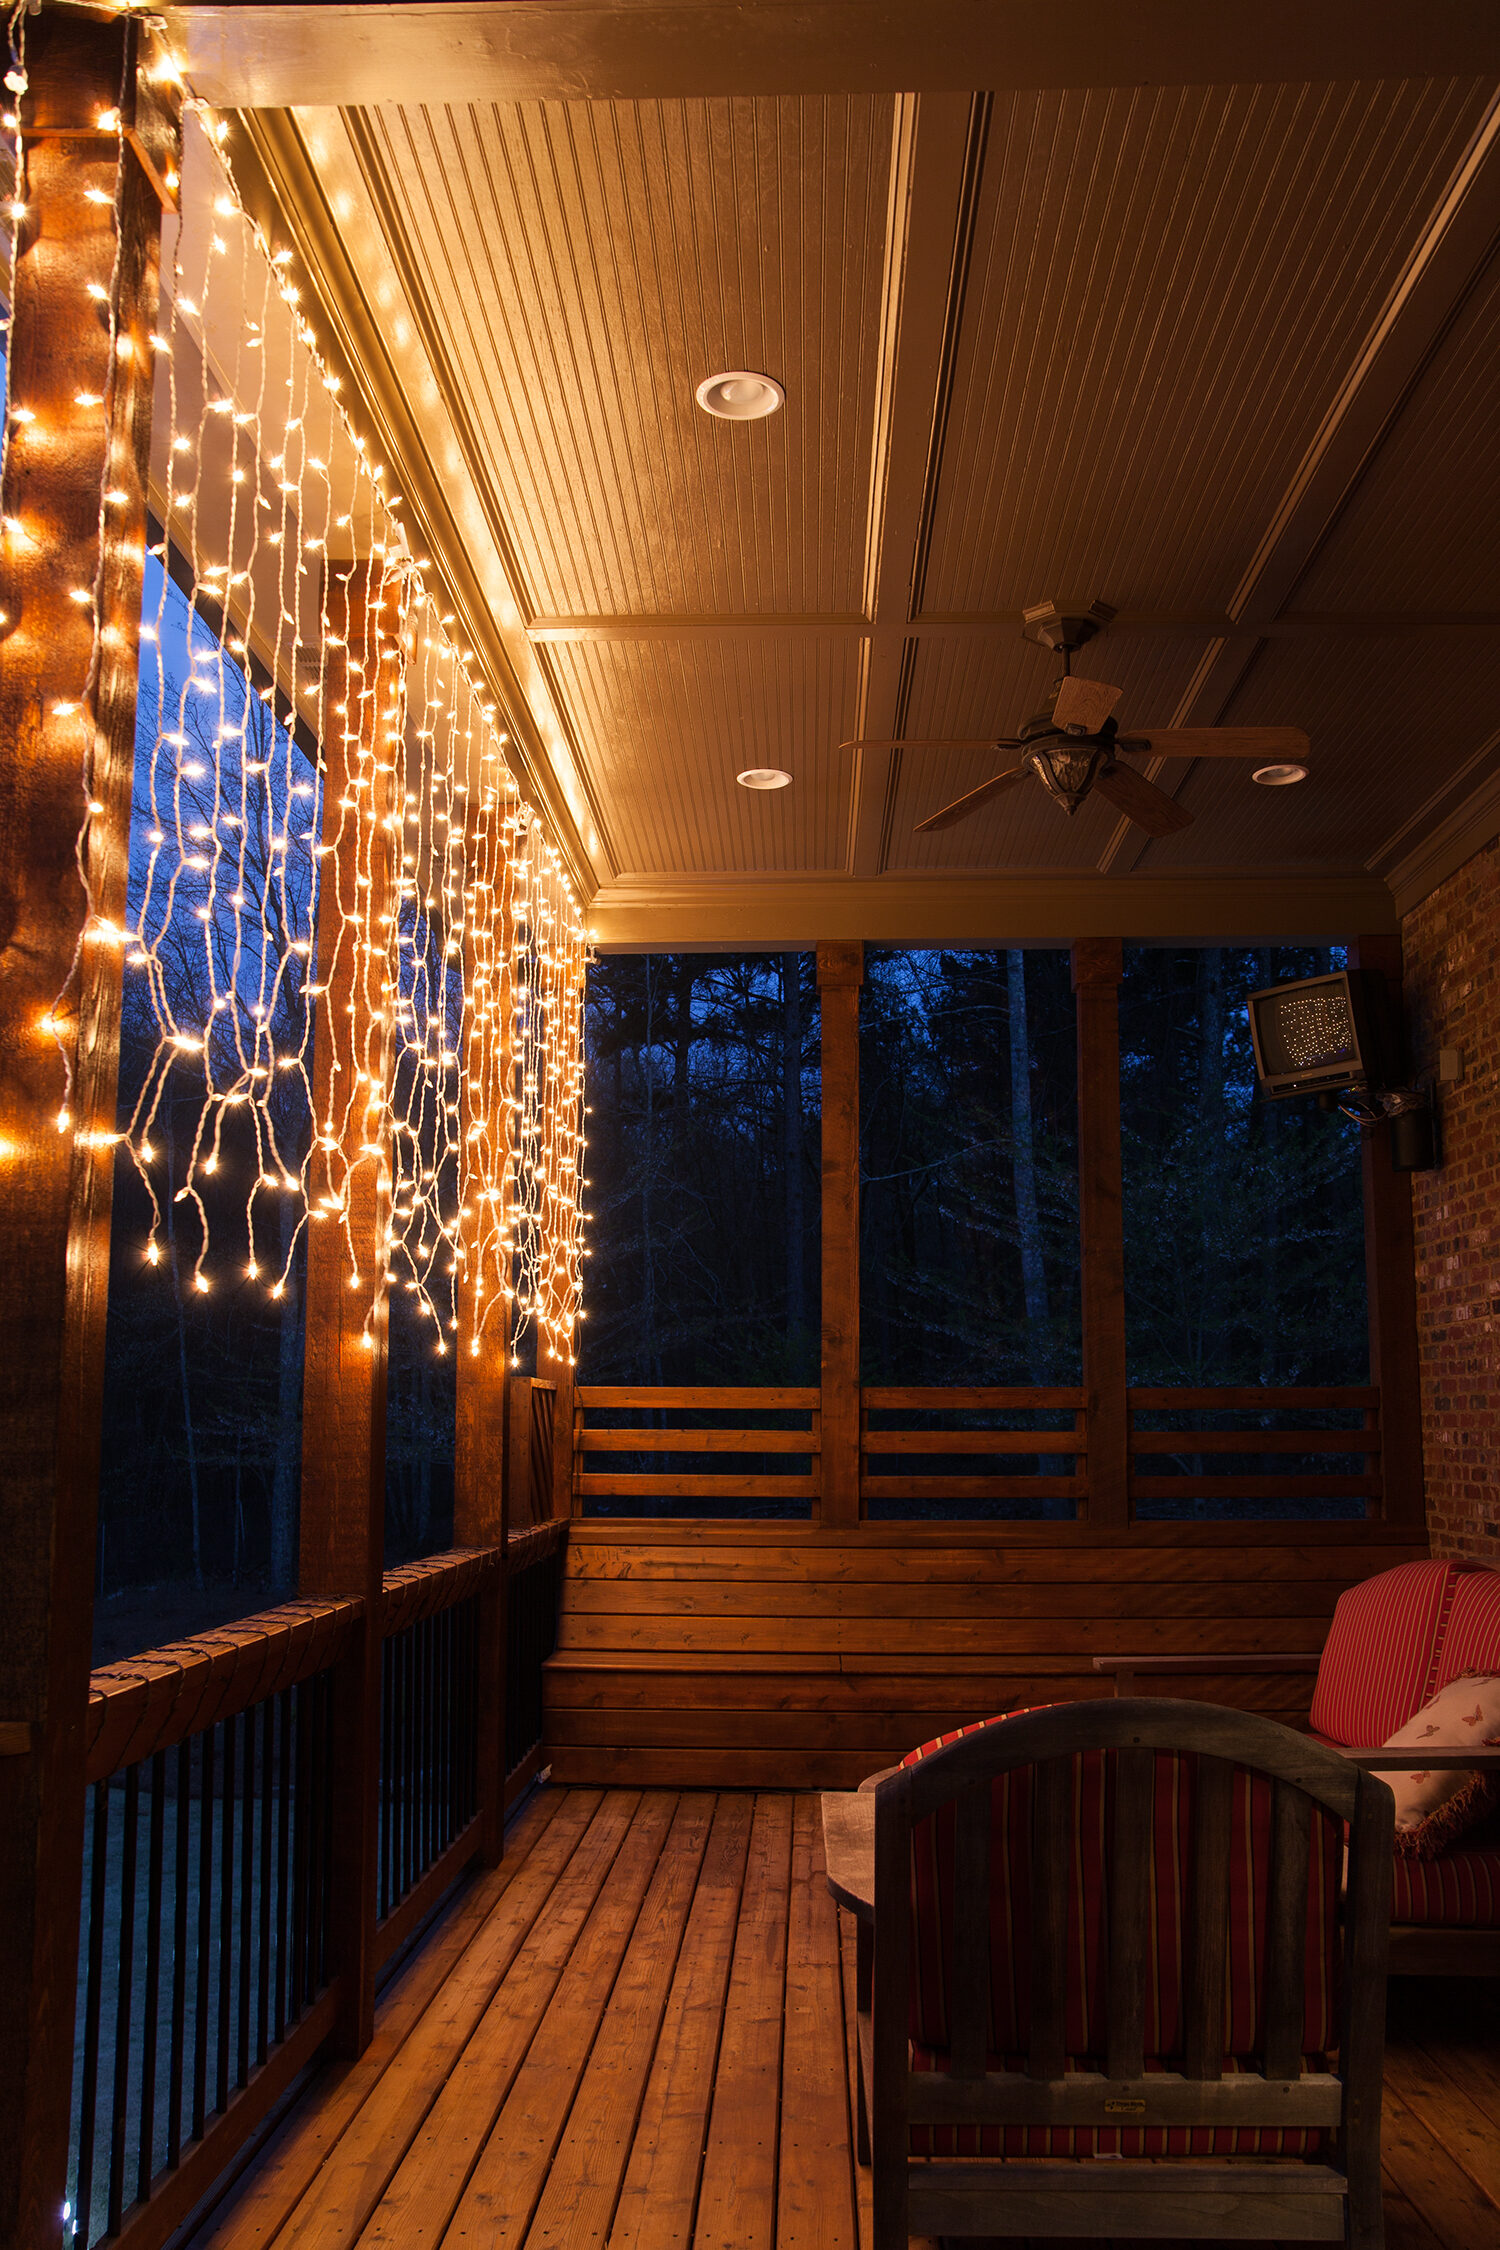 Patio Lights And Decks Look Amazing With White Mini Lights Hanging